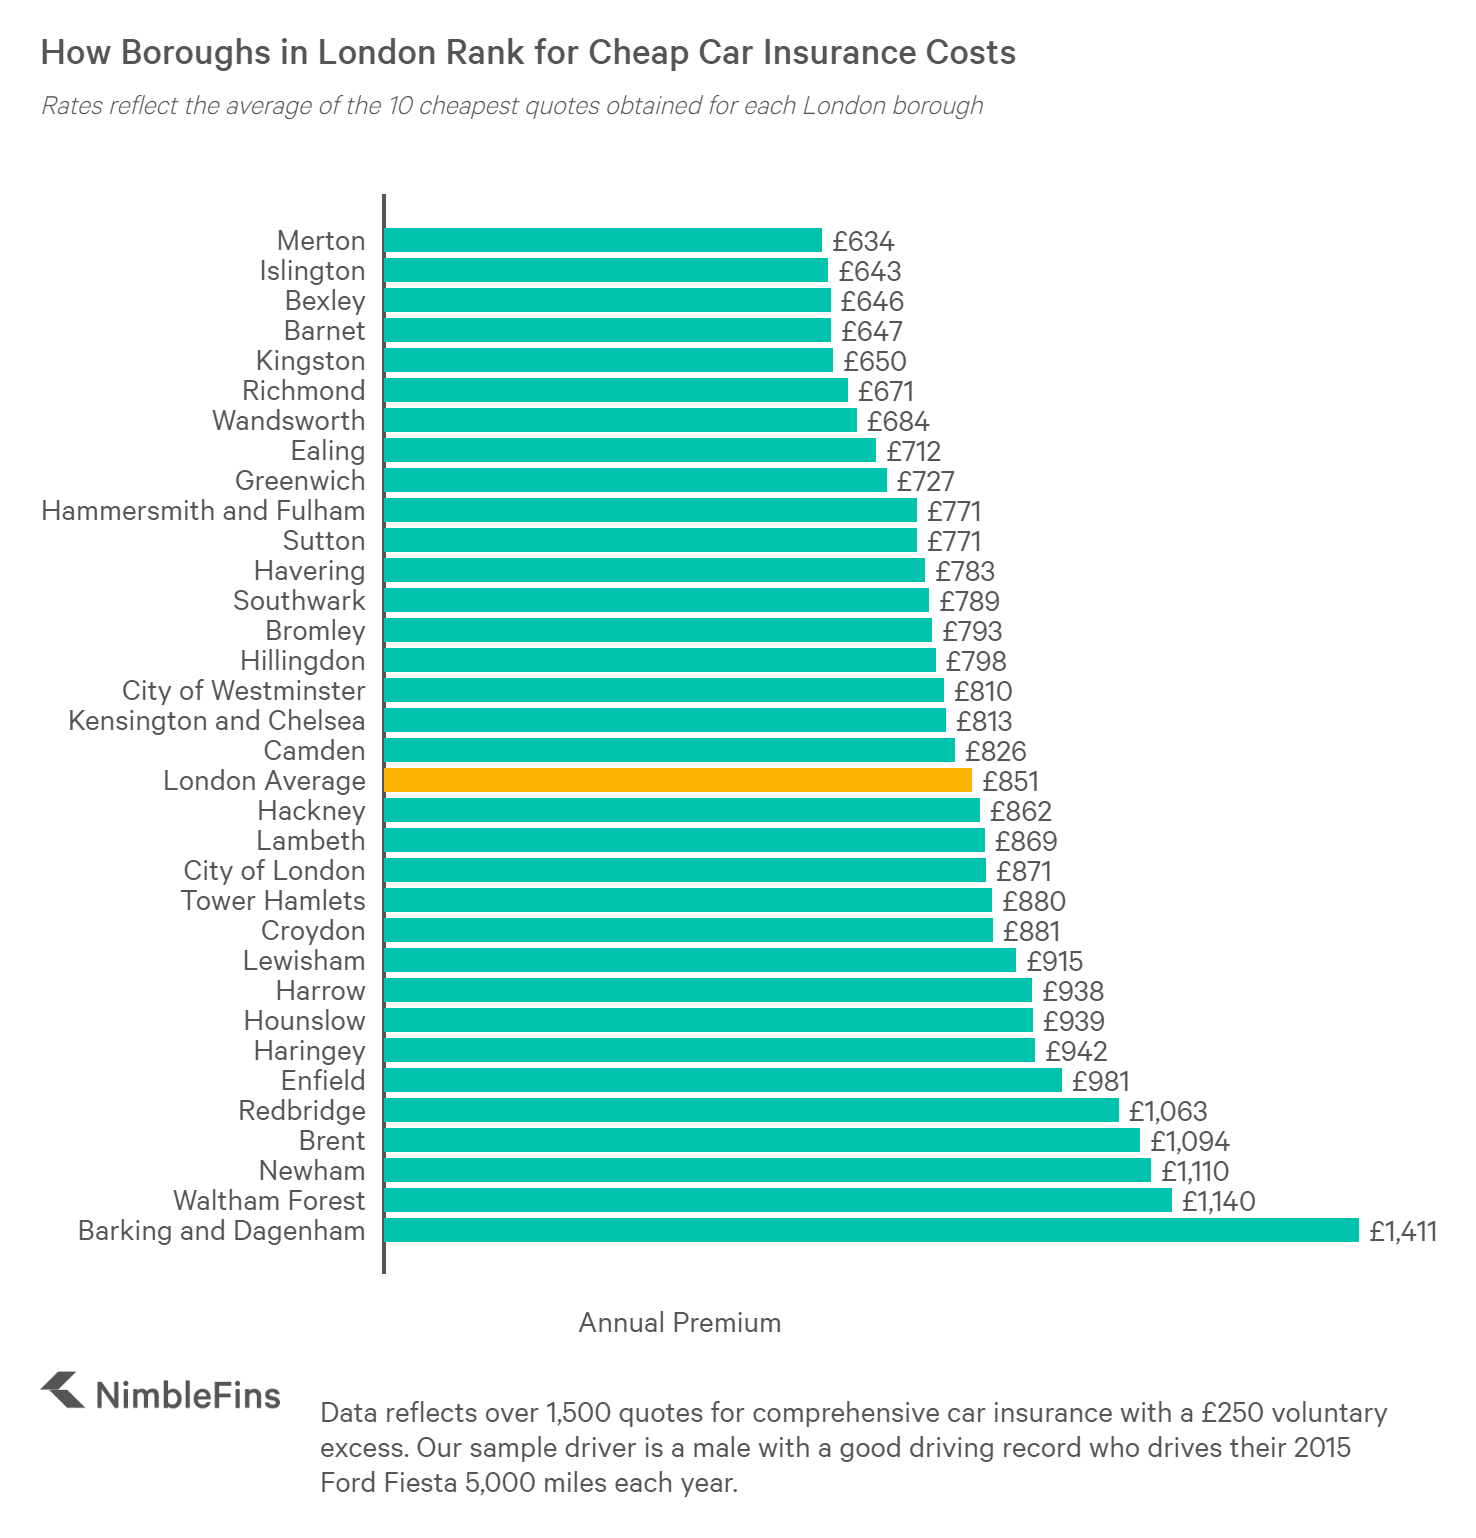 chart comparing the cost of cheap car insurance in each London borough